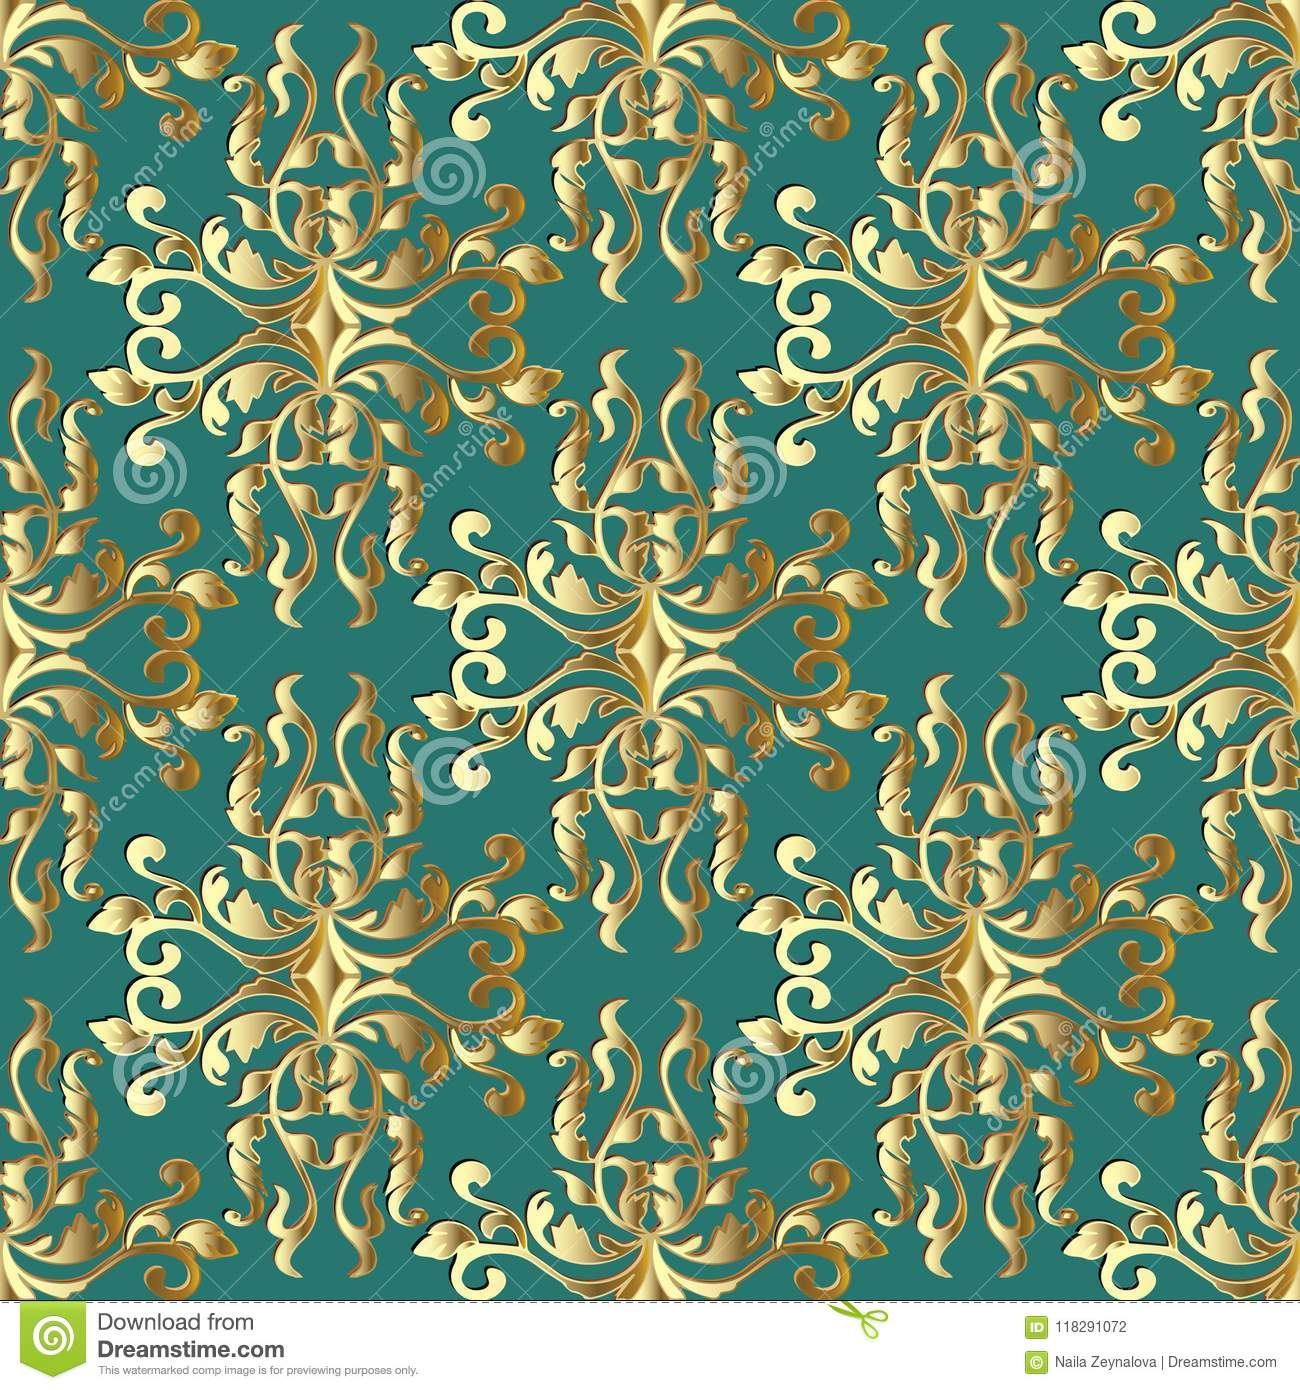 Ornate Gold Baroque Damask Seamless Pattern